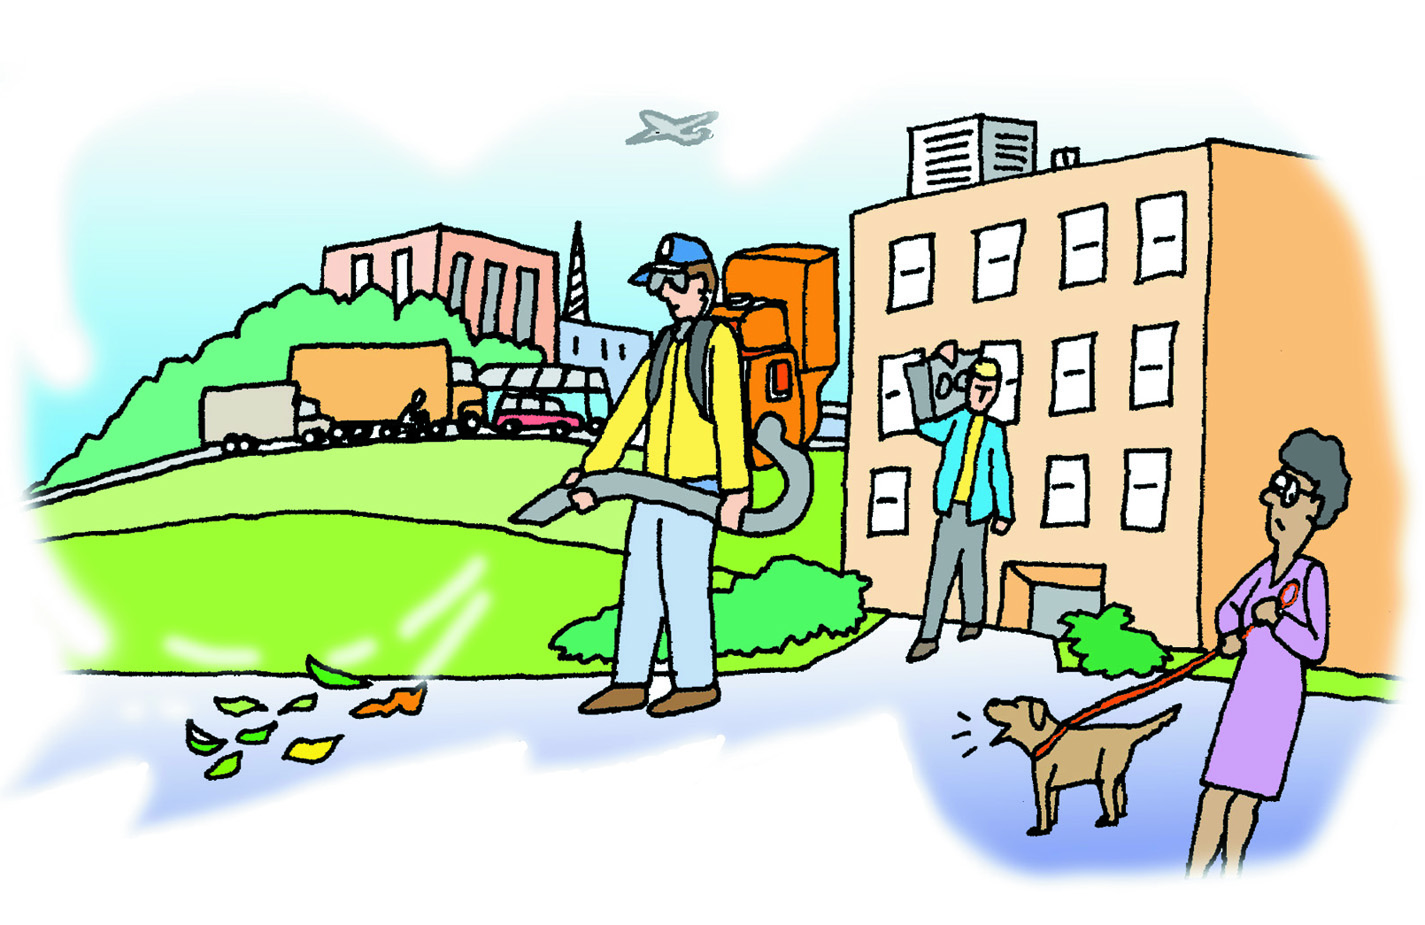 Pollution clipart for kid Of Environmental of Control